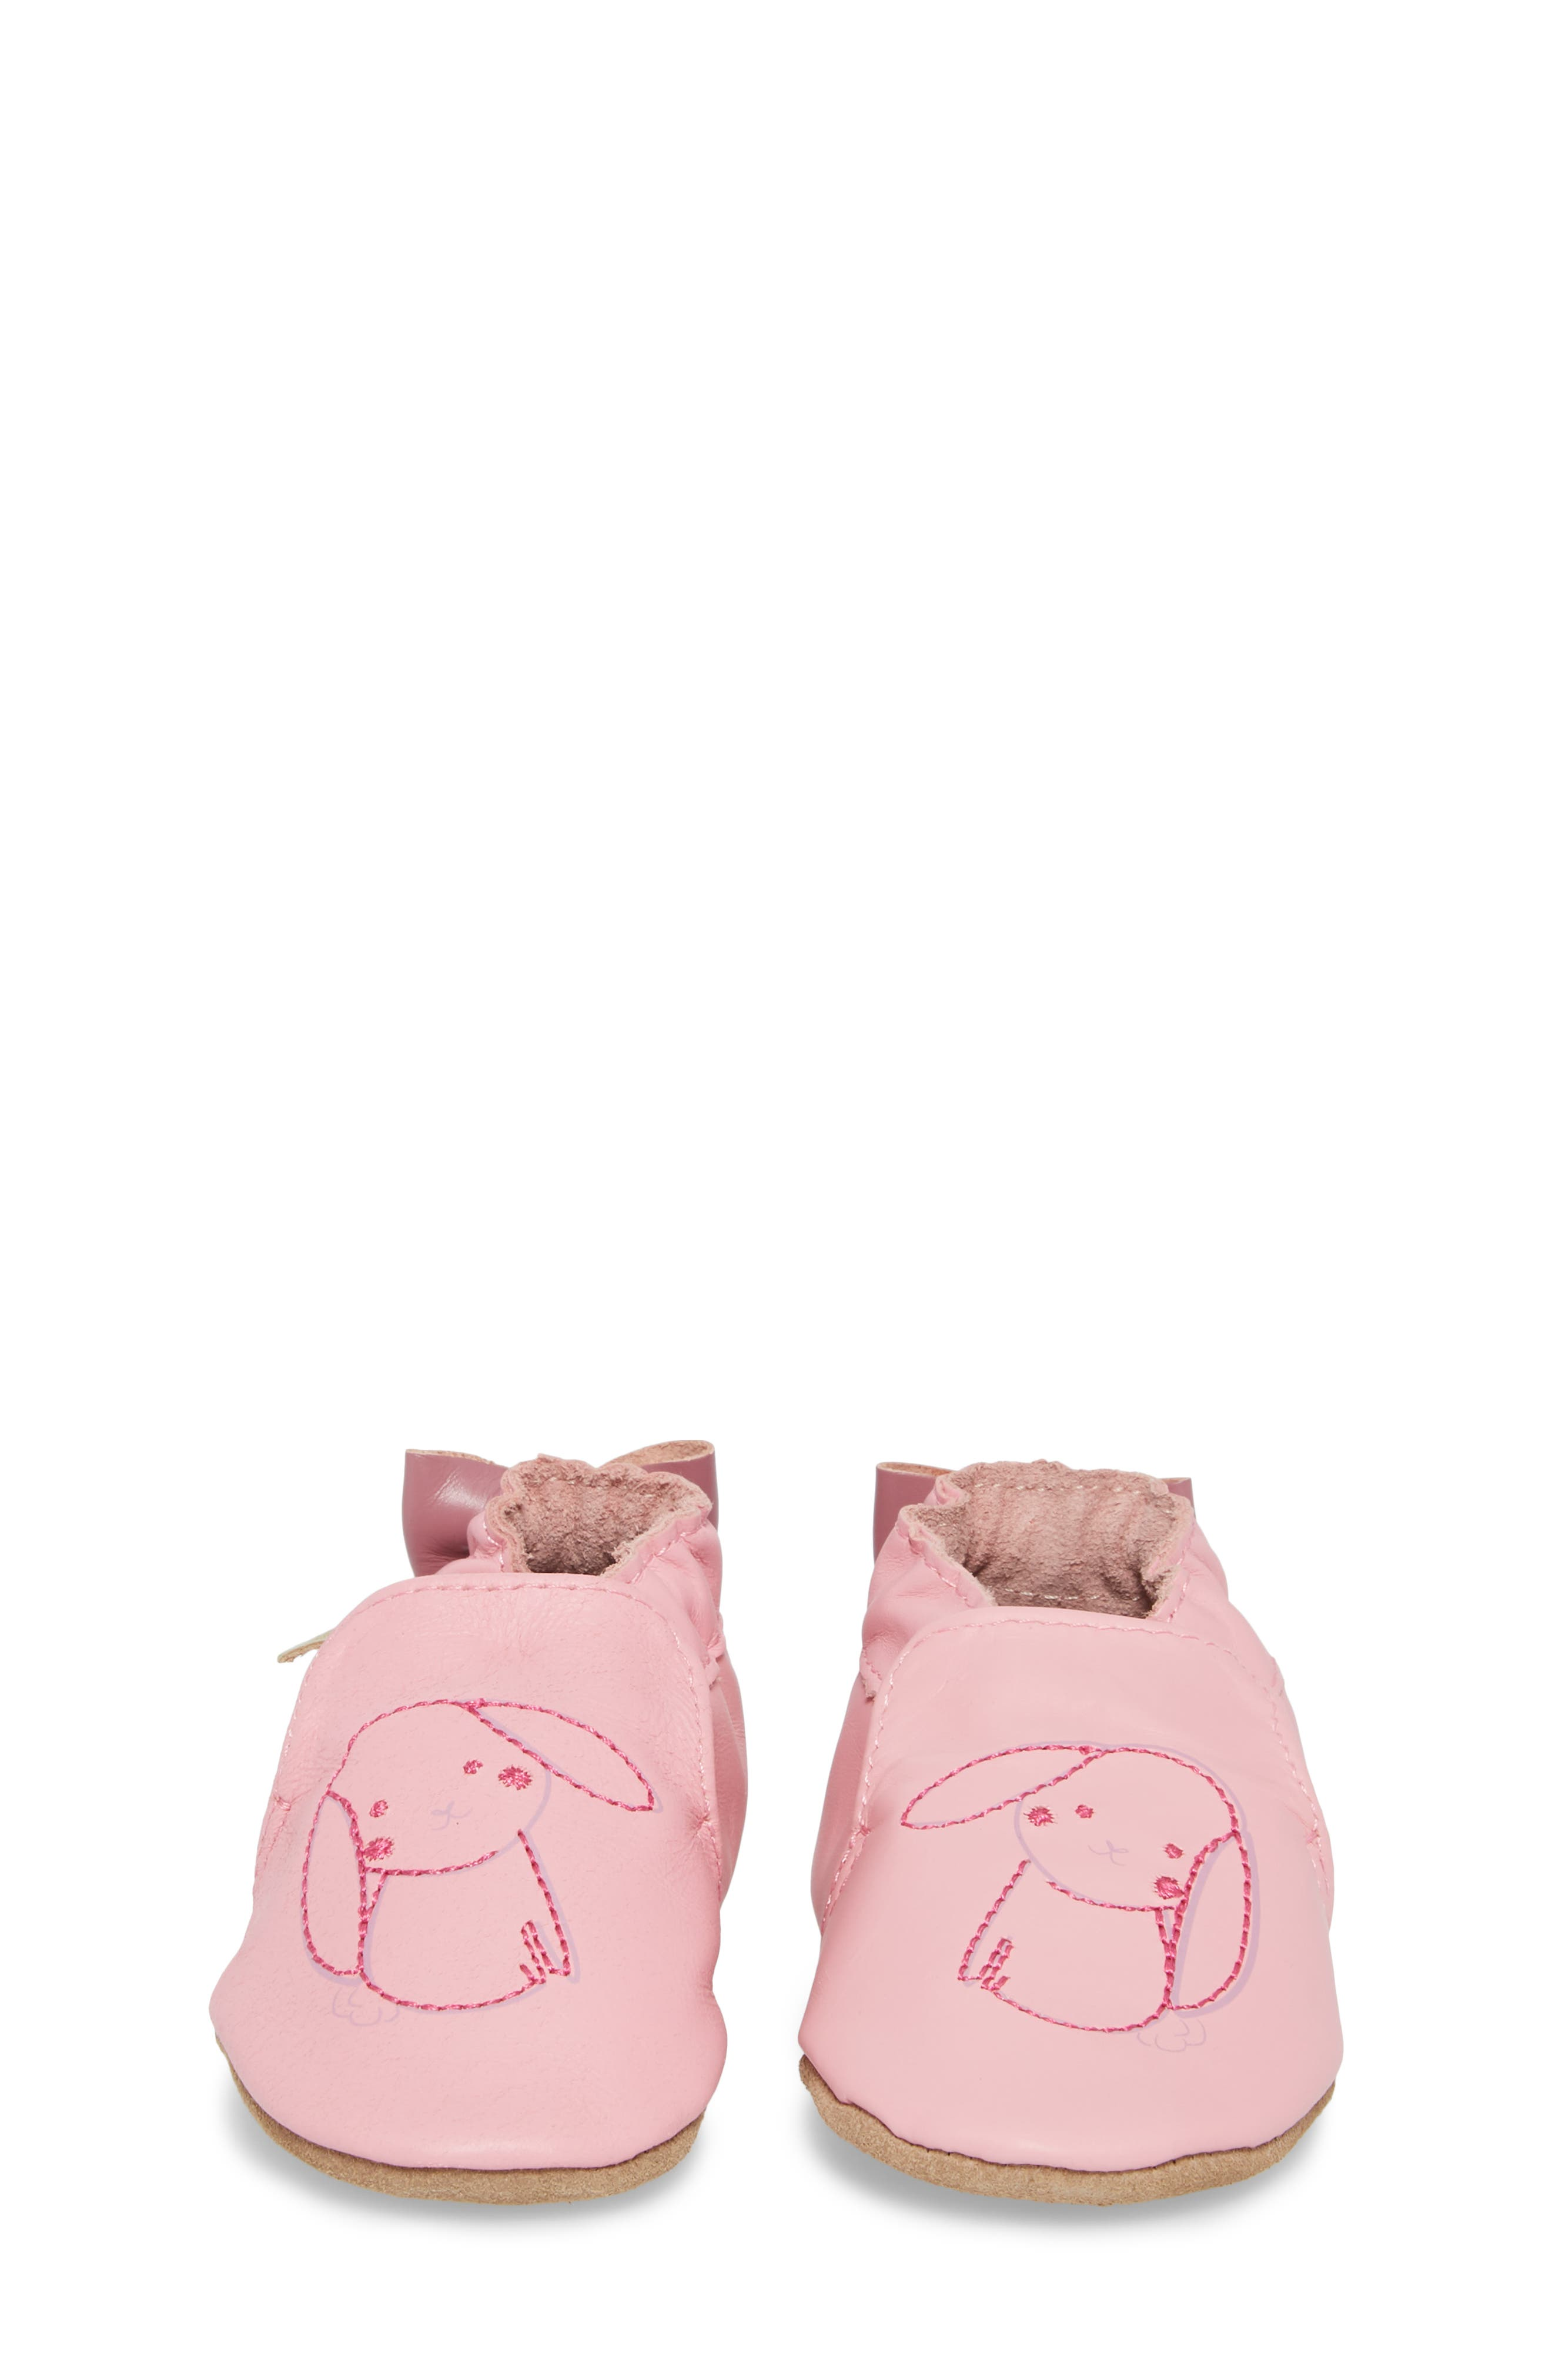 Sweet Bunny Moccasin Crib Shoe,                             Alternate thumbnail 4, color,                             PASTEL PINK